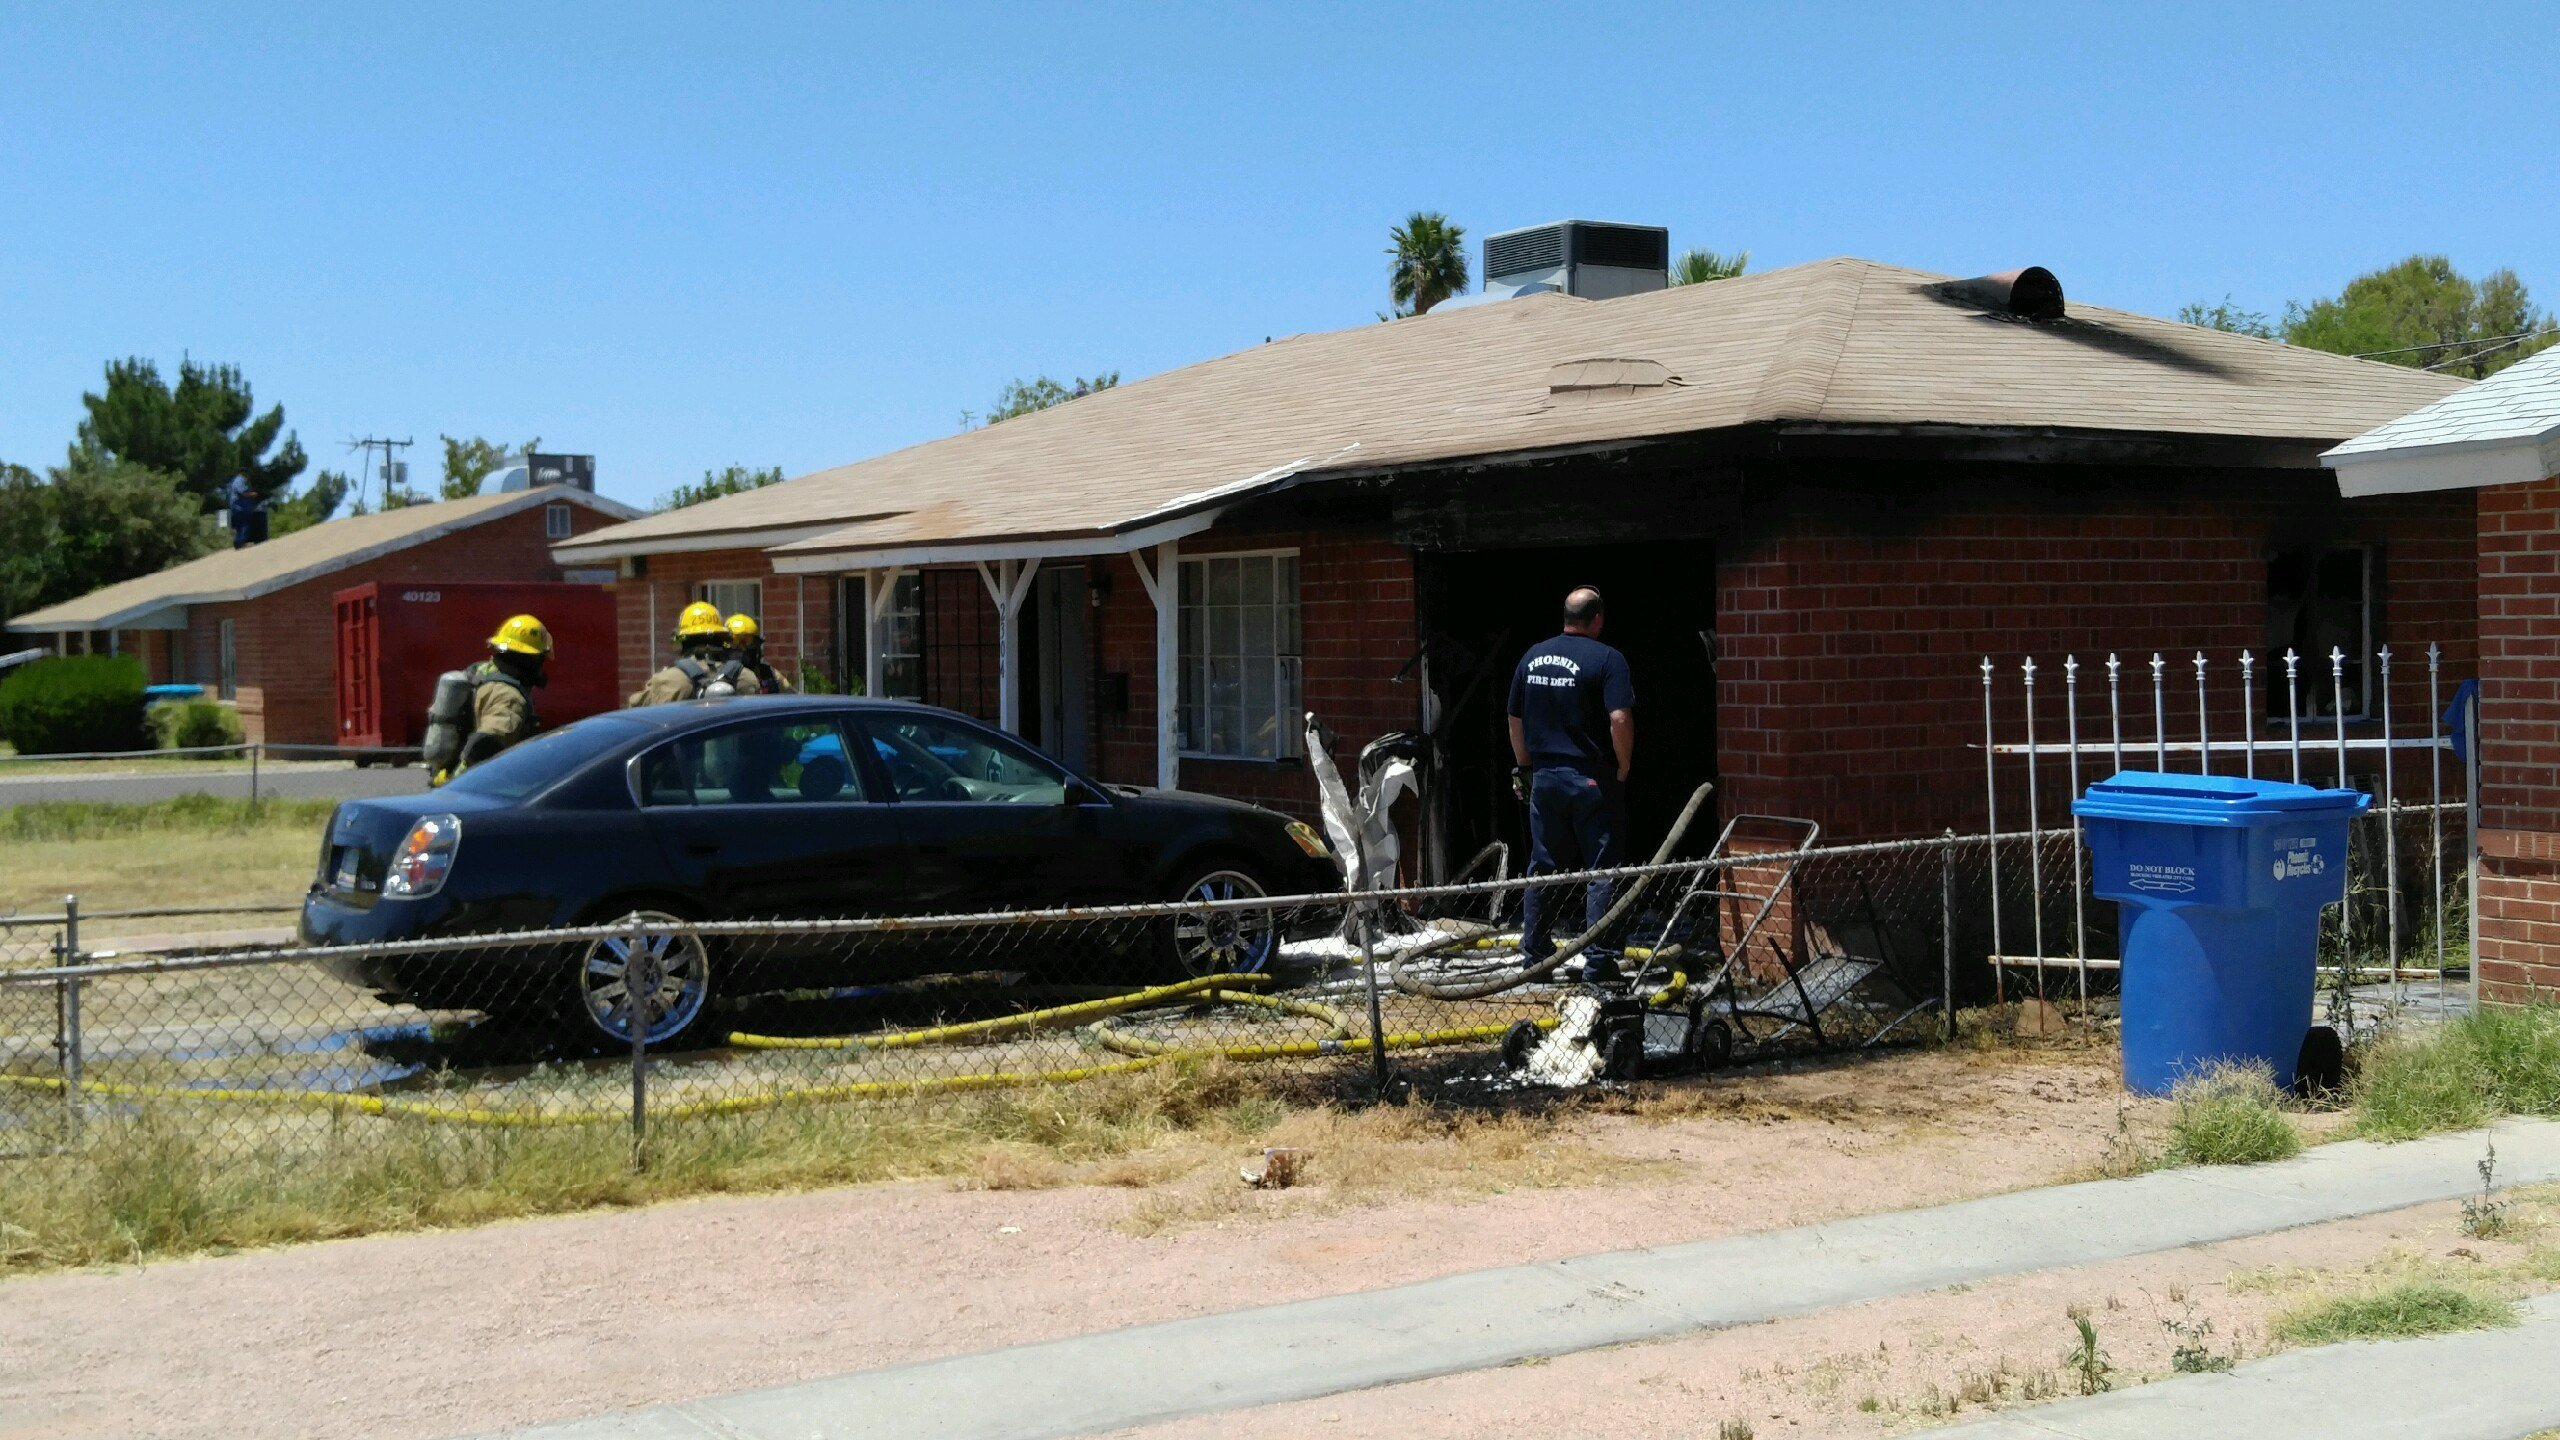 Fire crews put out a fire at a home near 24th street and Indian School Rd. (13 May 2017) [Source: 3TV/CBS5]